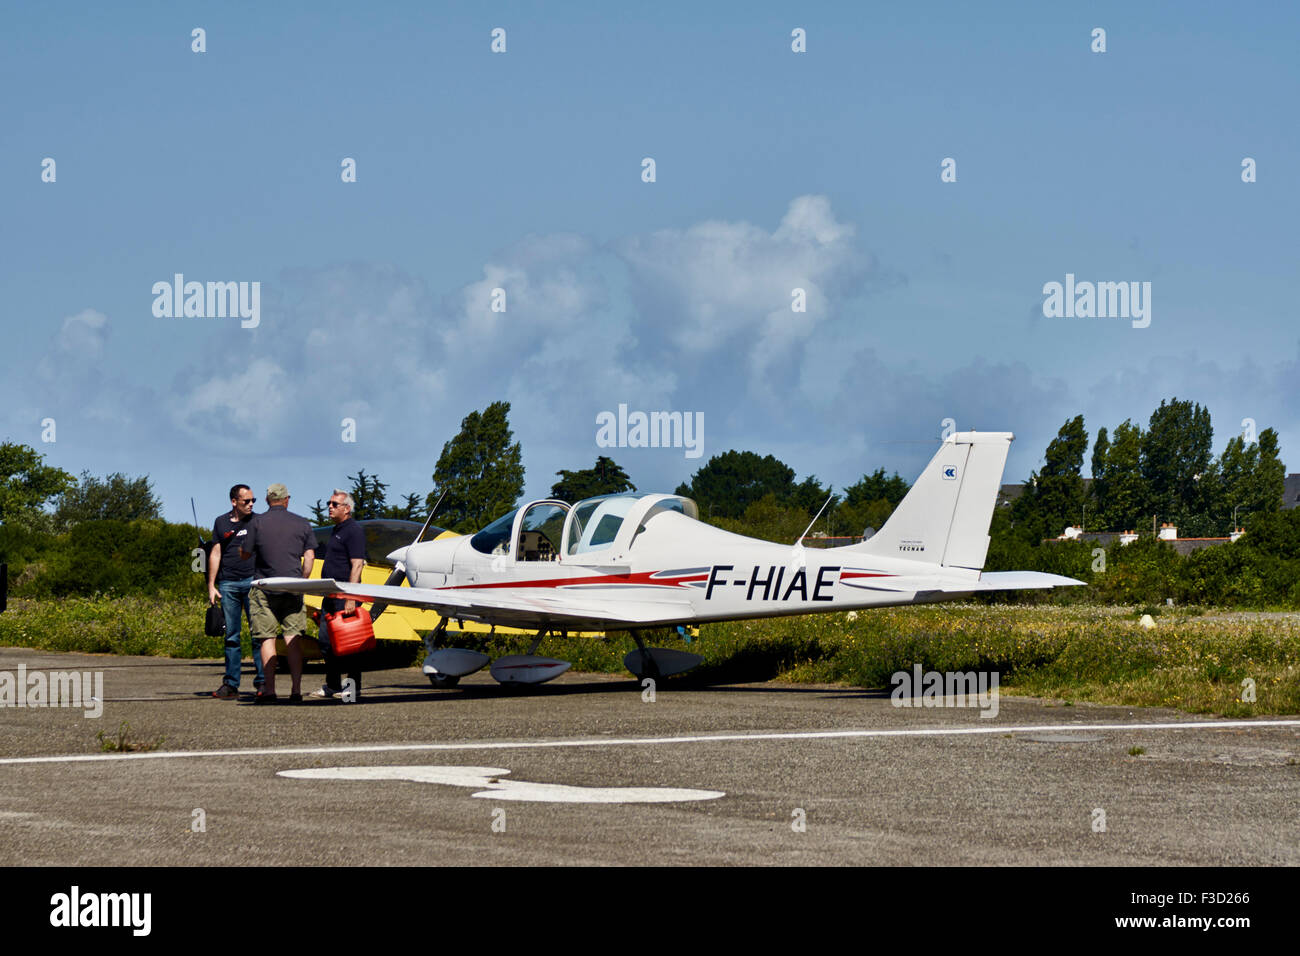 Private aircraft on tarmac with three males standing alongside - Stock Image